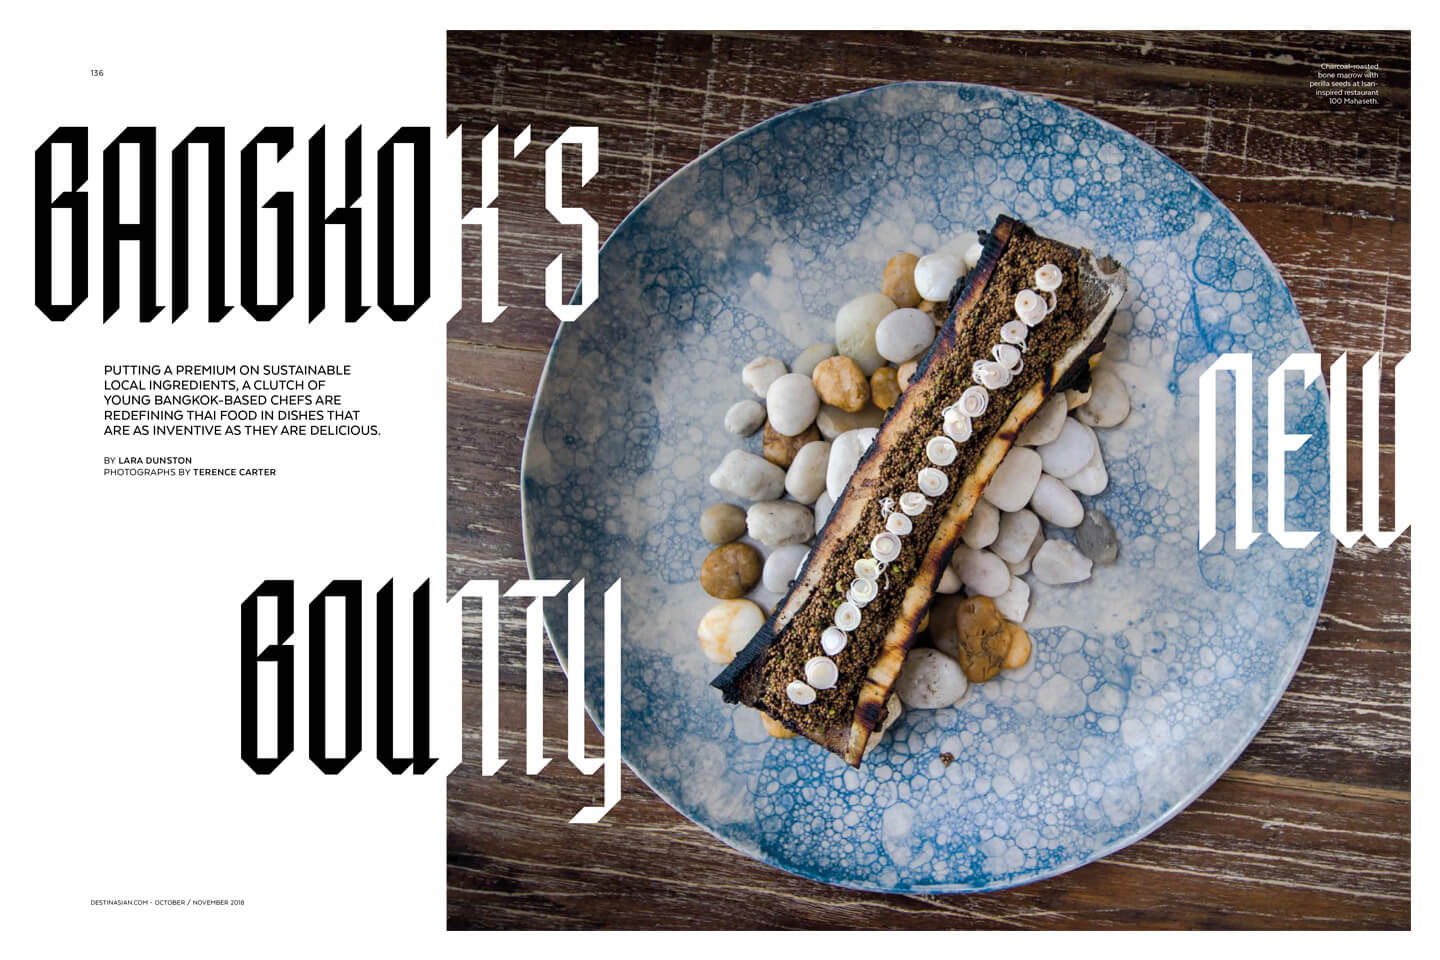 DestinAsian Magazine feature story. Putting a premium on sustainable local ingredients, a clutch of young Bangkok-based chefs are redefining Thai food in dishes that are as inventive as they are delicious. Words: Lara Dunston, Photographs: Terence Carter.